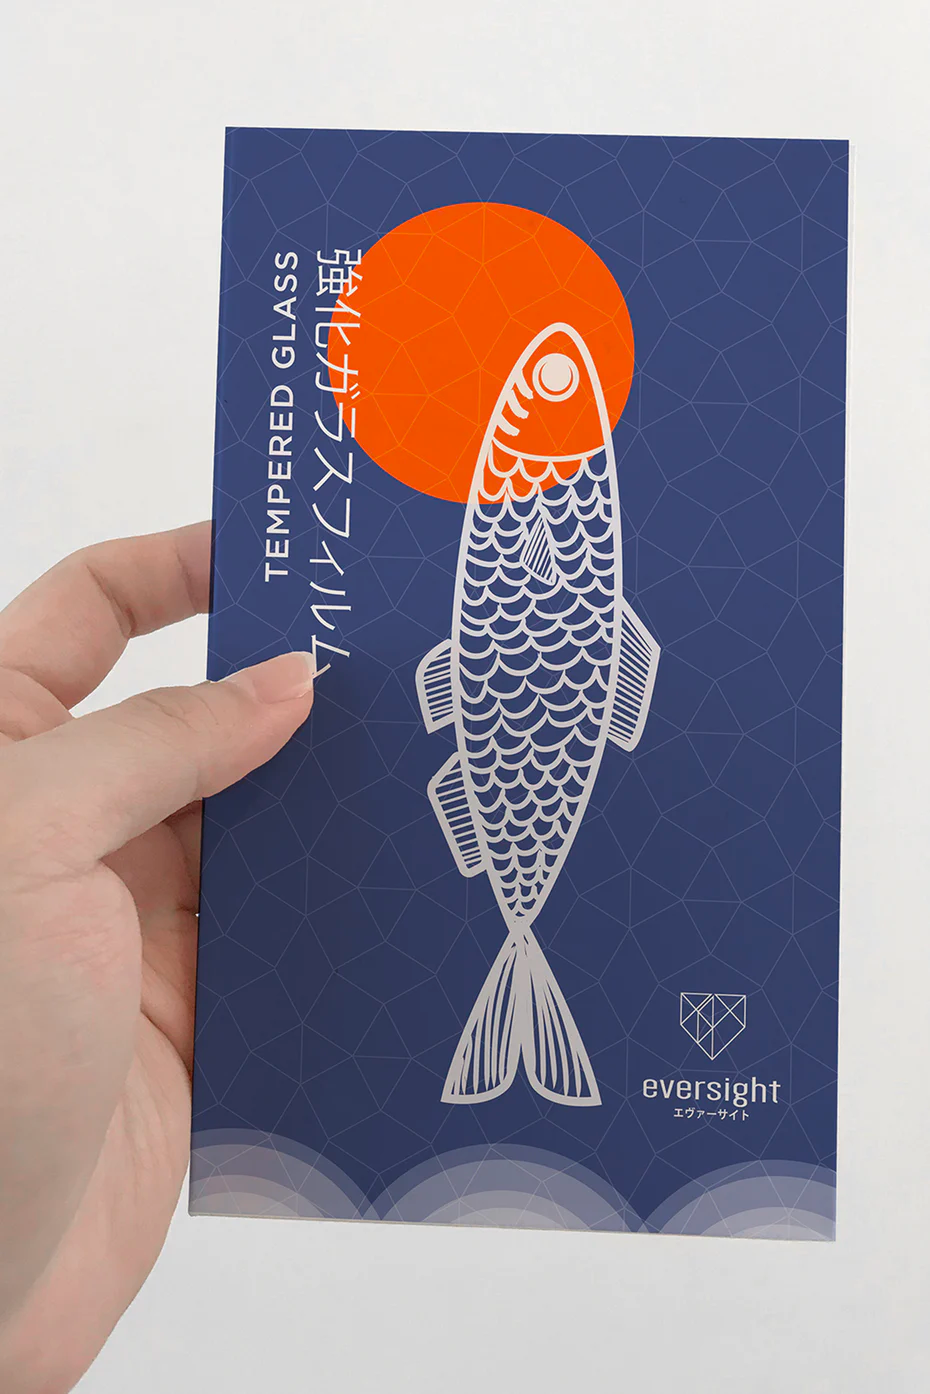 How to bring Japanese design into your creative work